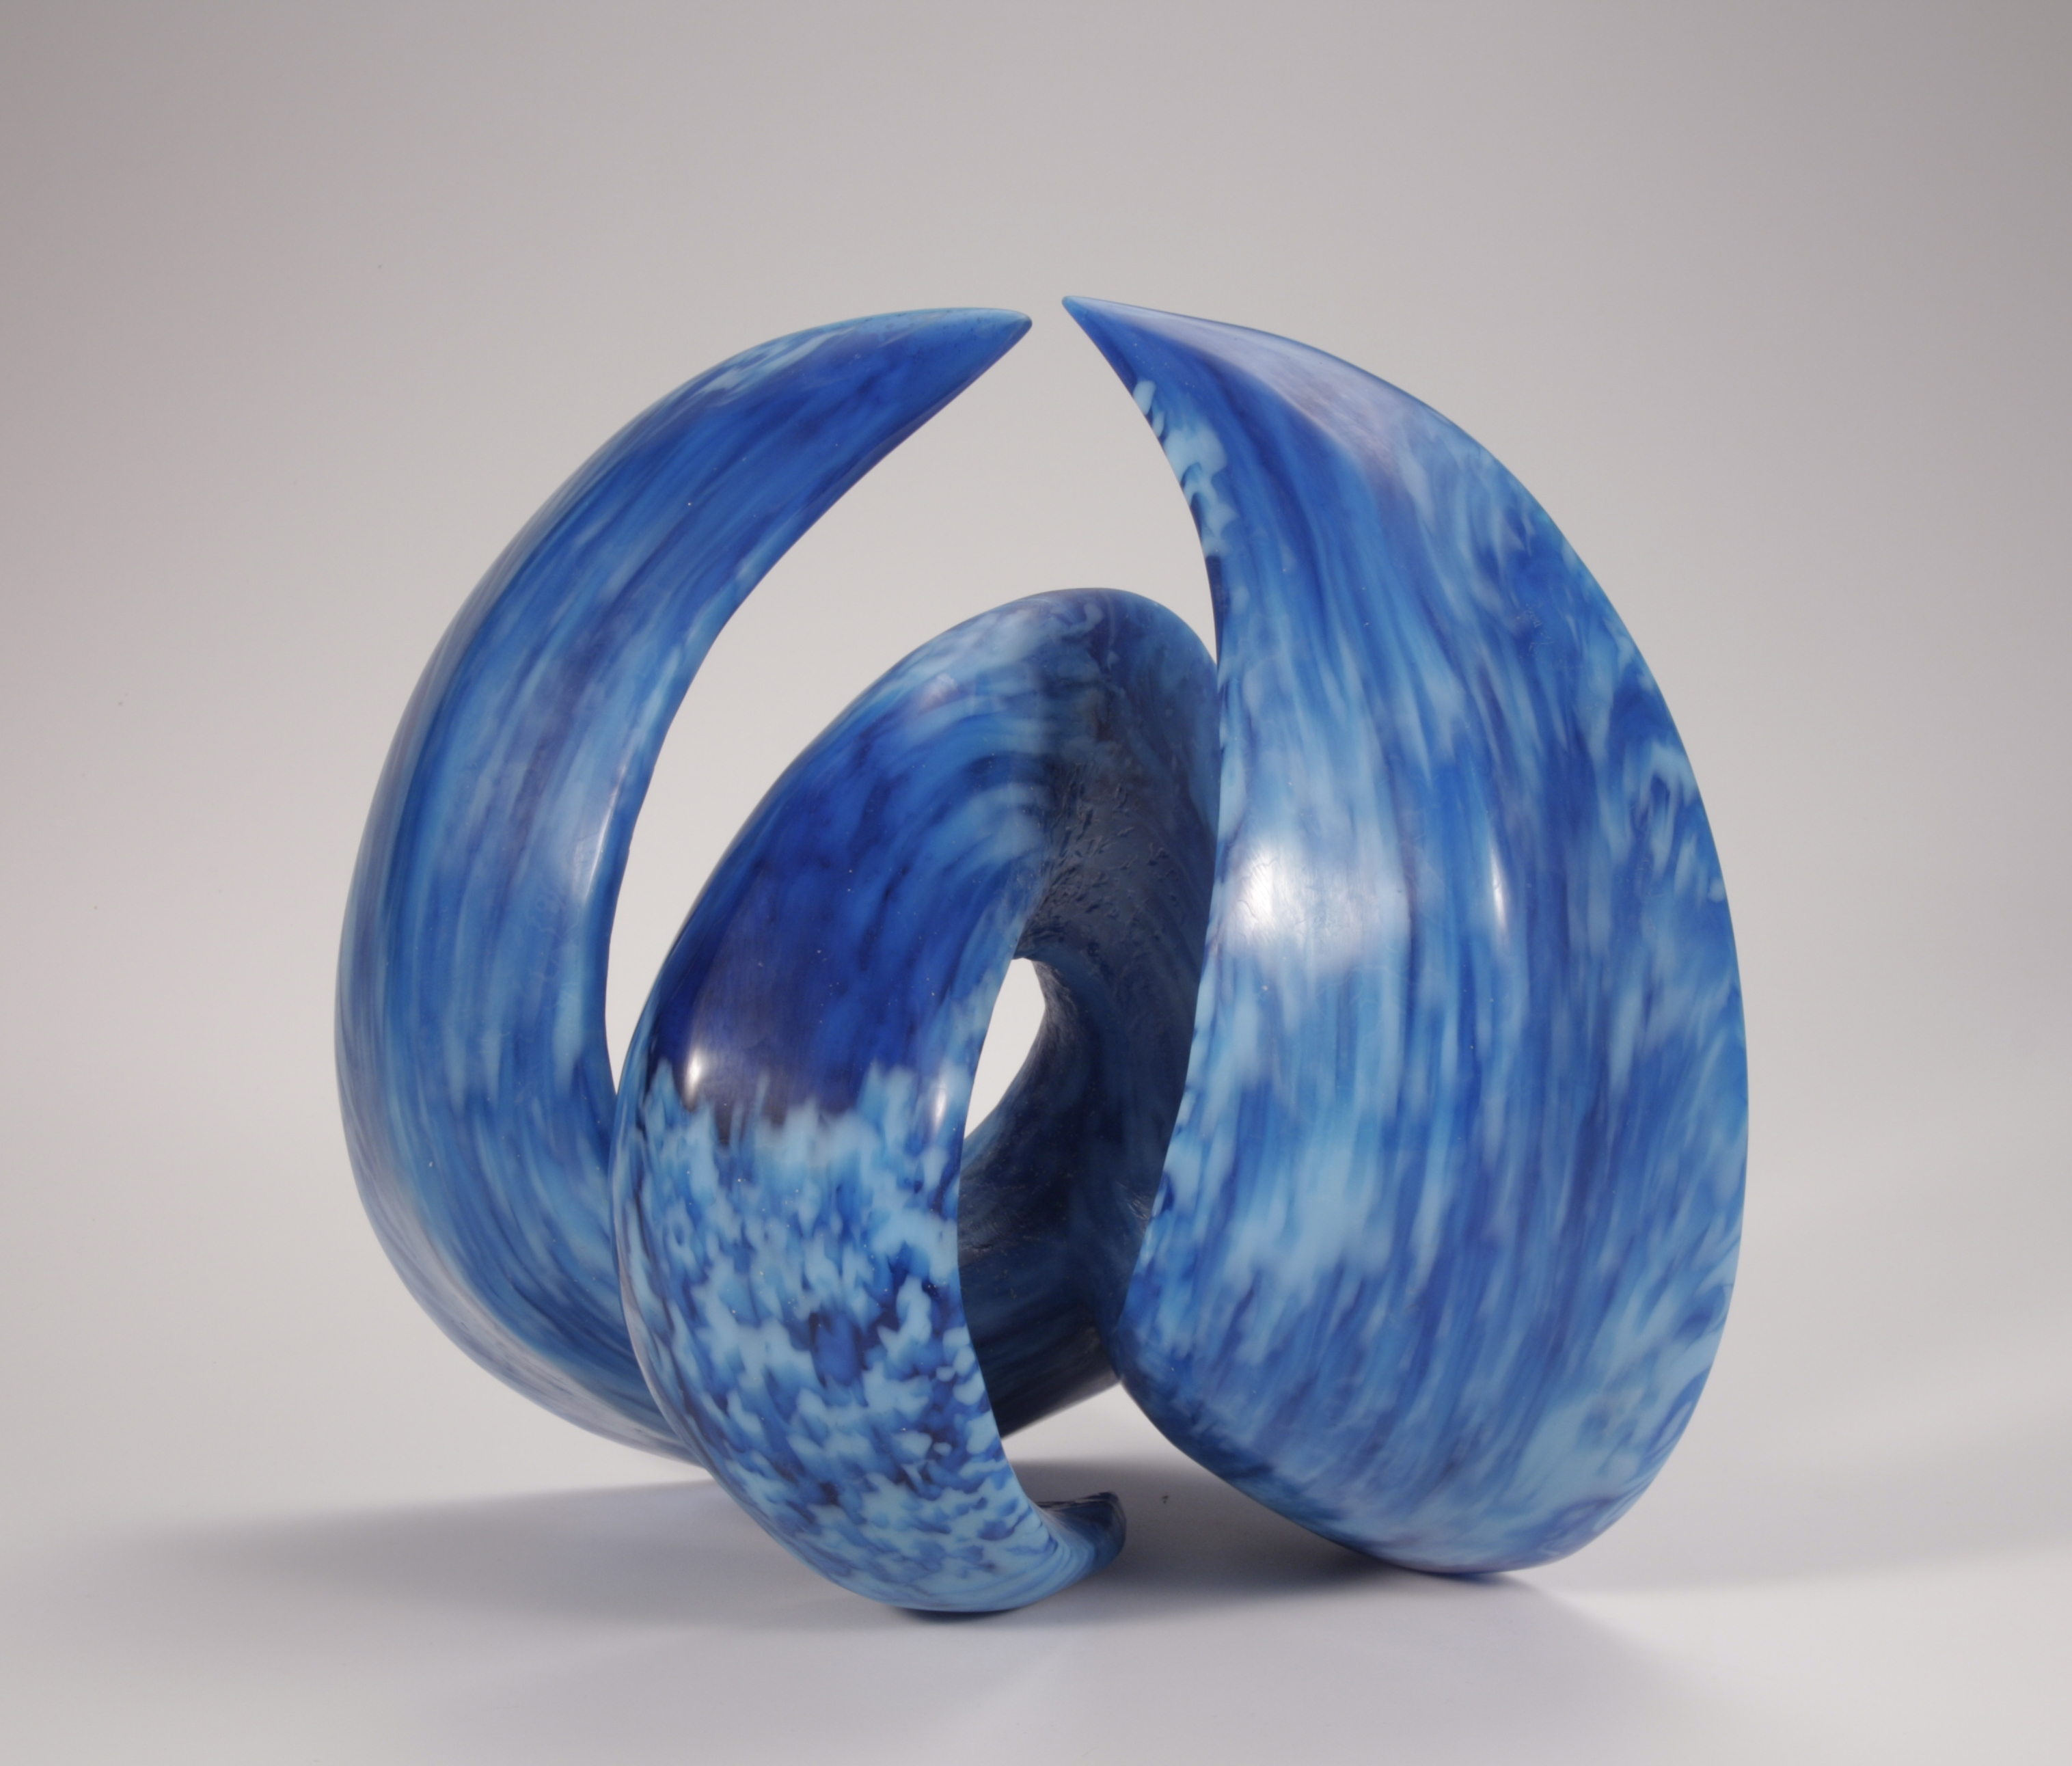 Sculpture of cast glass wave form in turquoise and light blue.